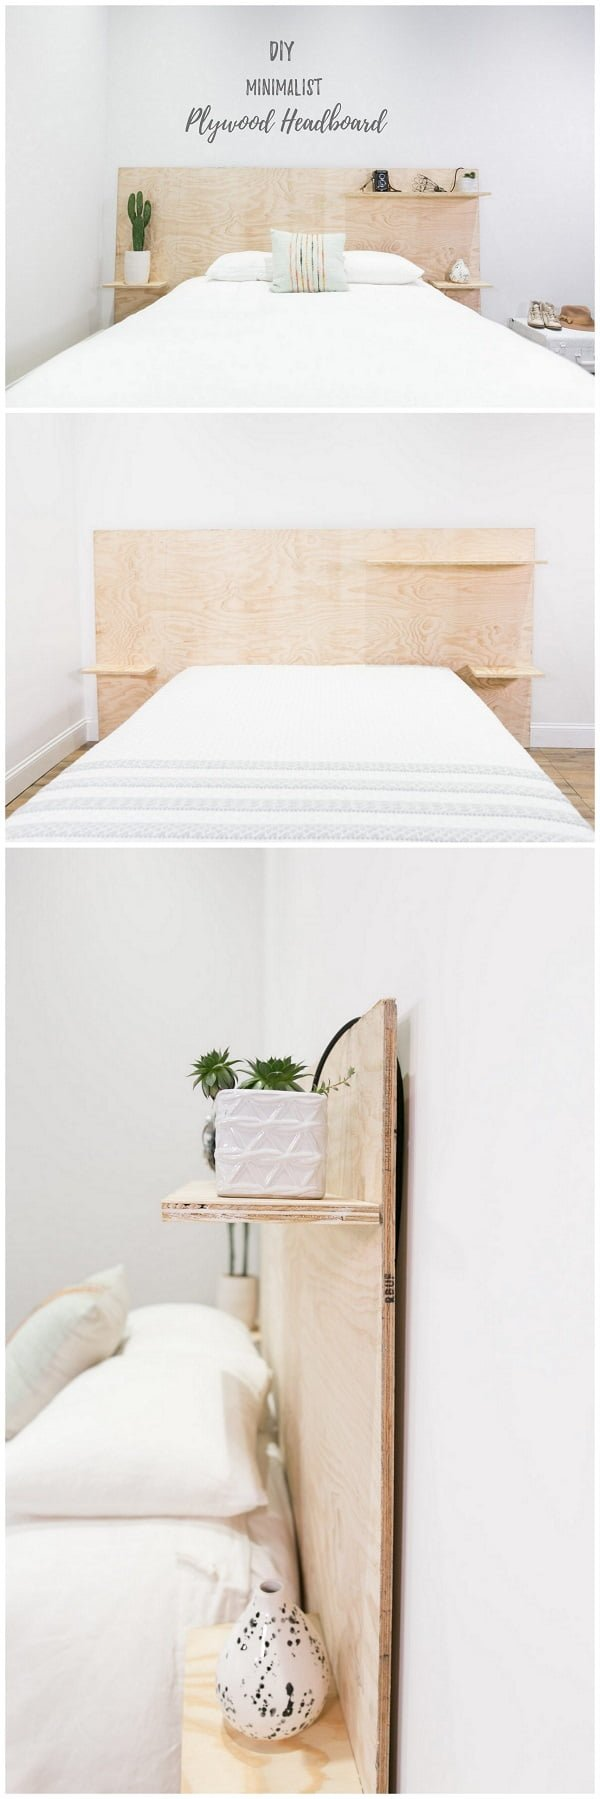 Check out this easy idea on how to make a #DIY minimalist plywood shelf headboard #homedecor #wood #crafts #project